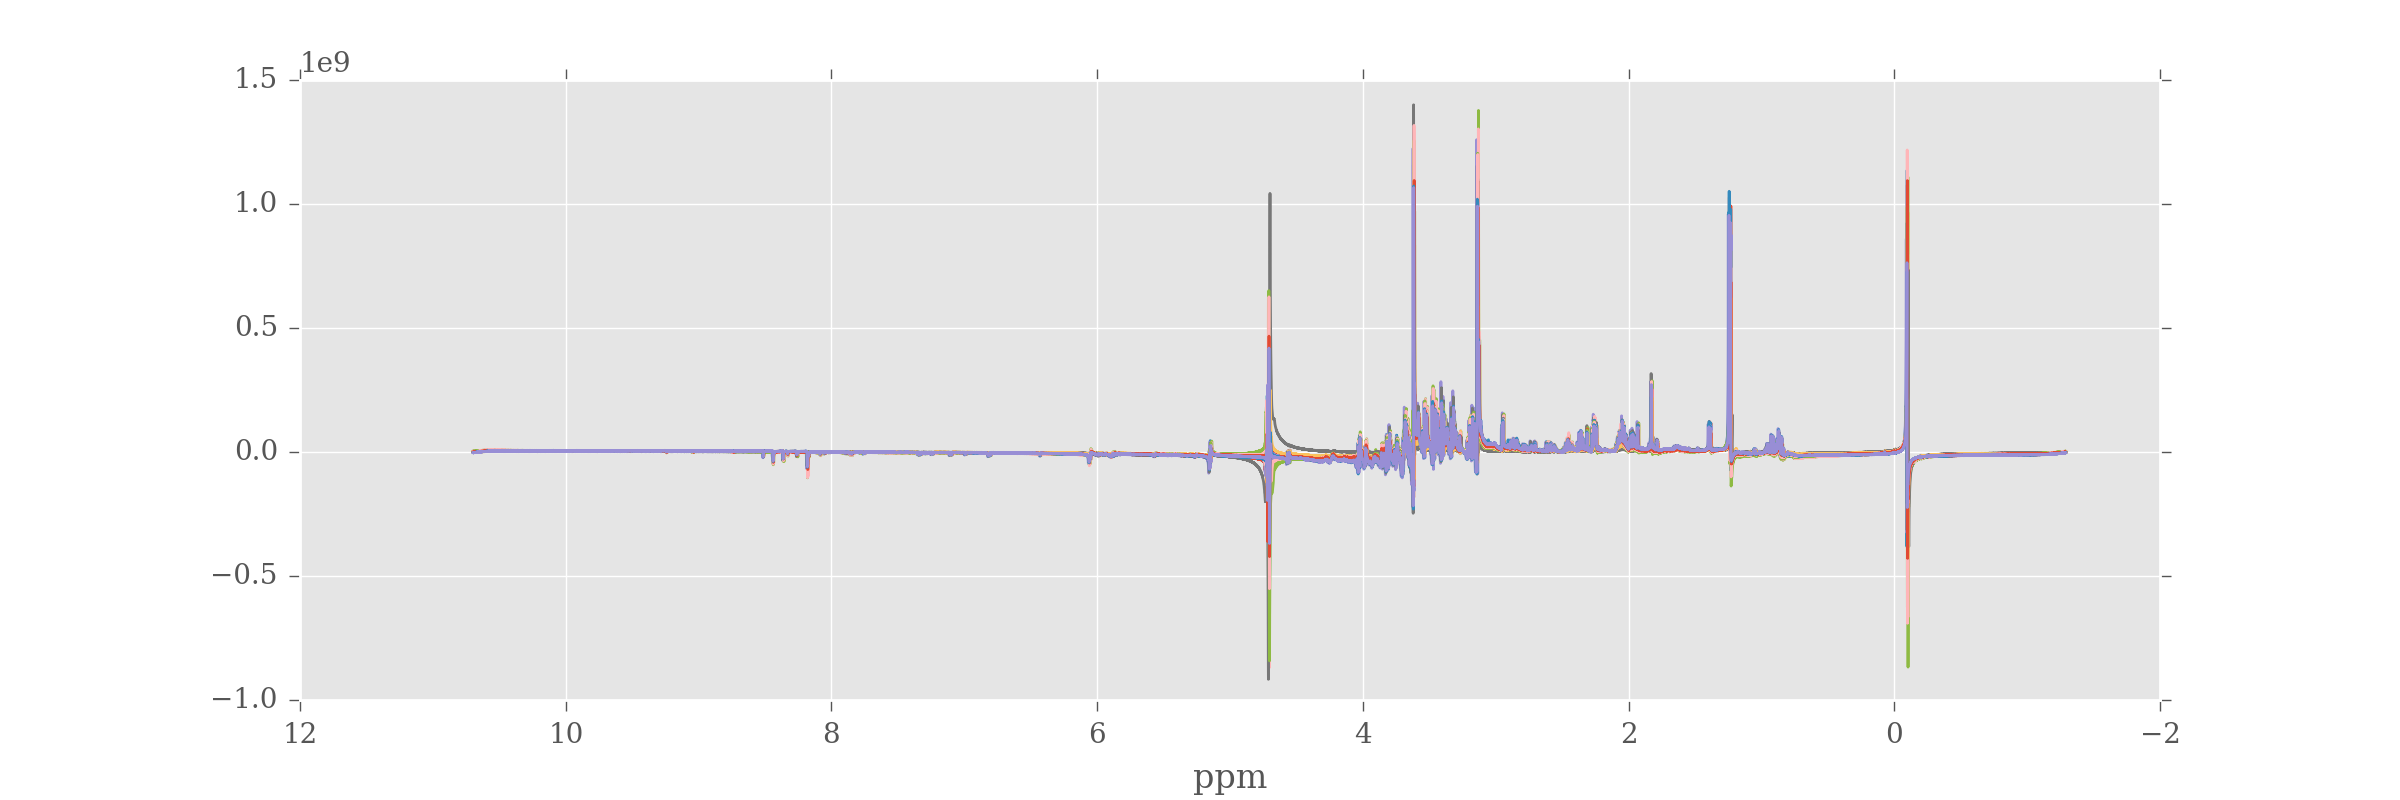 All spectra following fourier transformation with correct ppm values